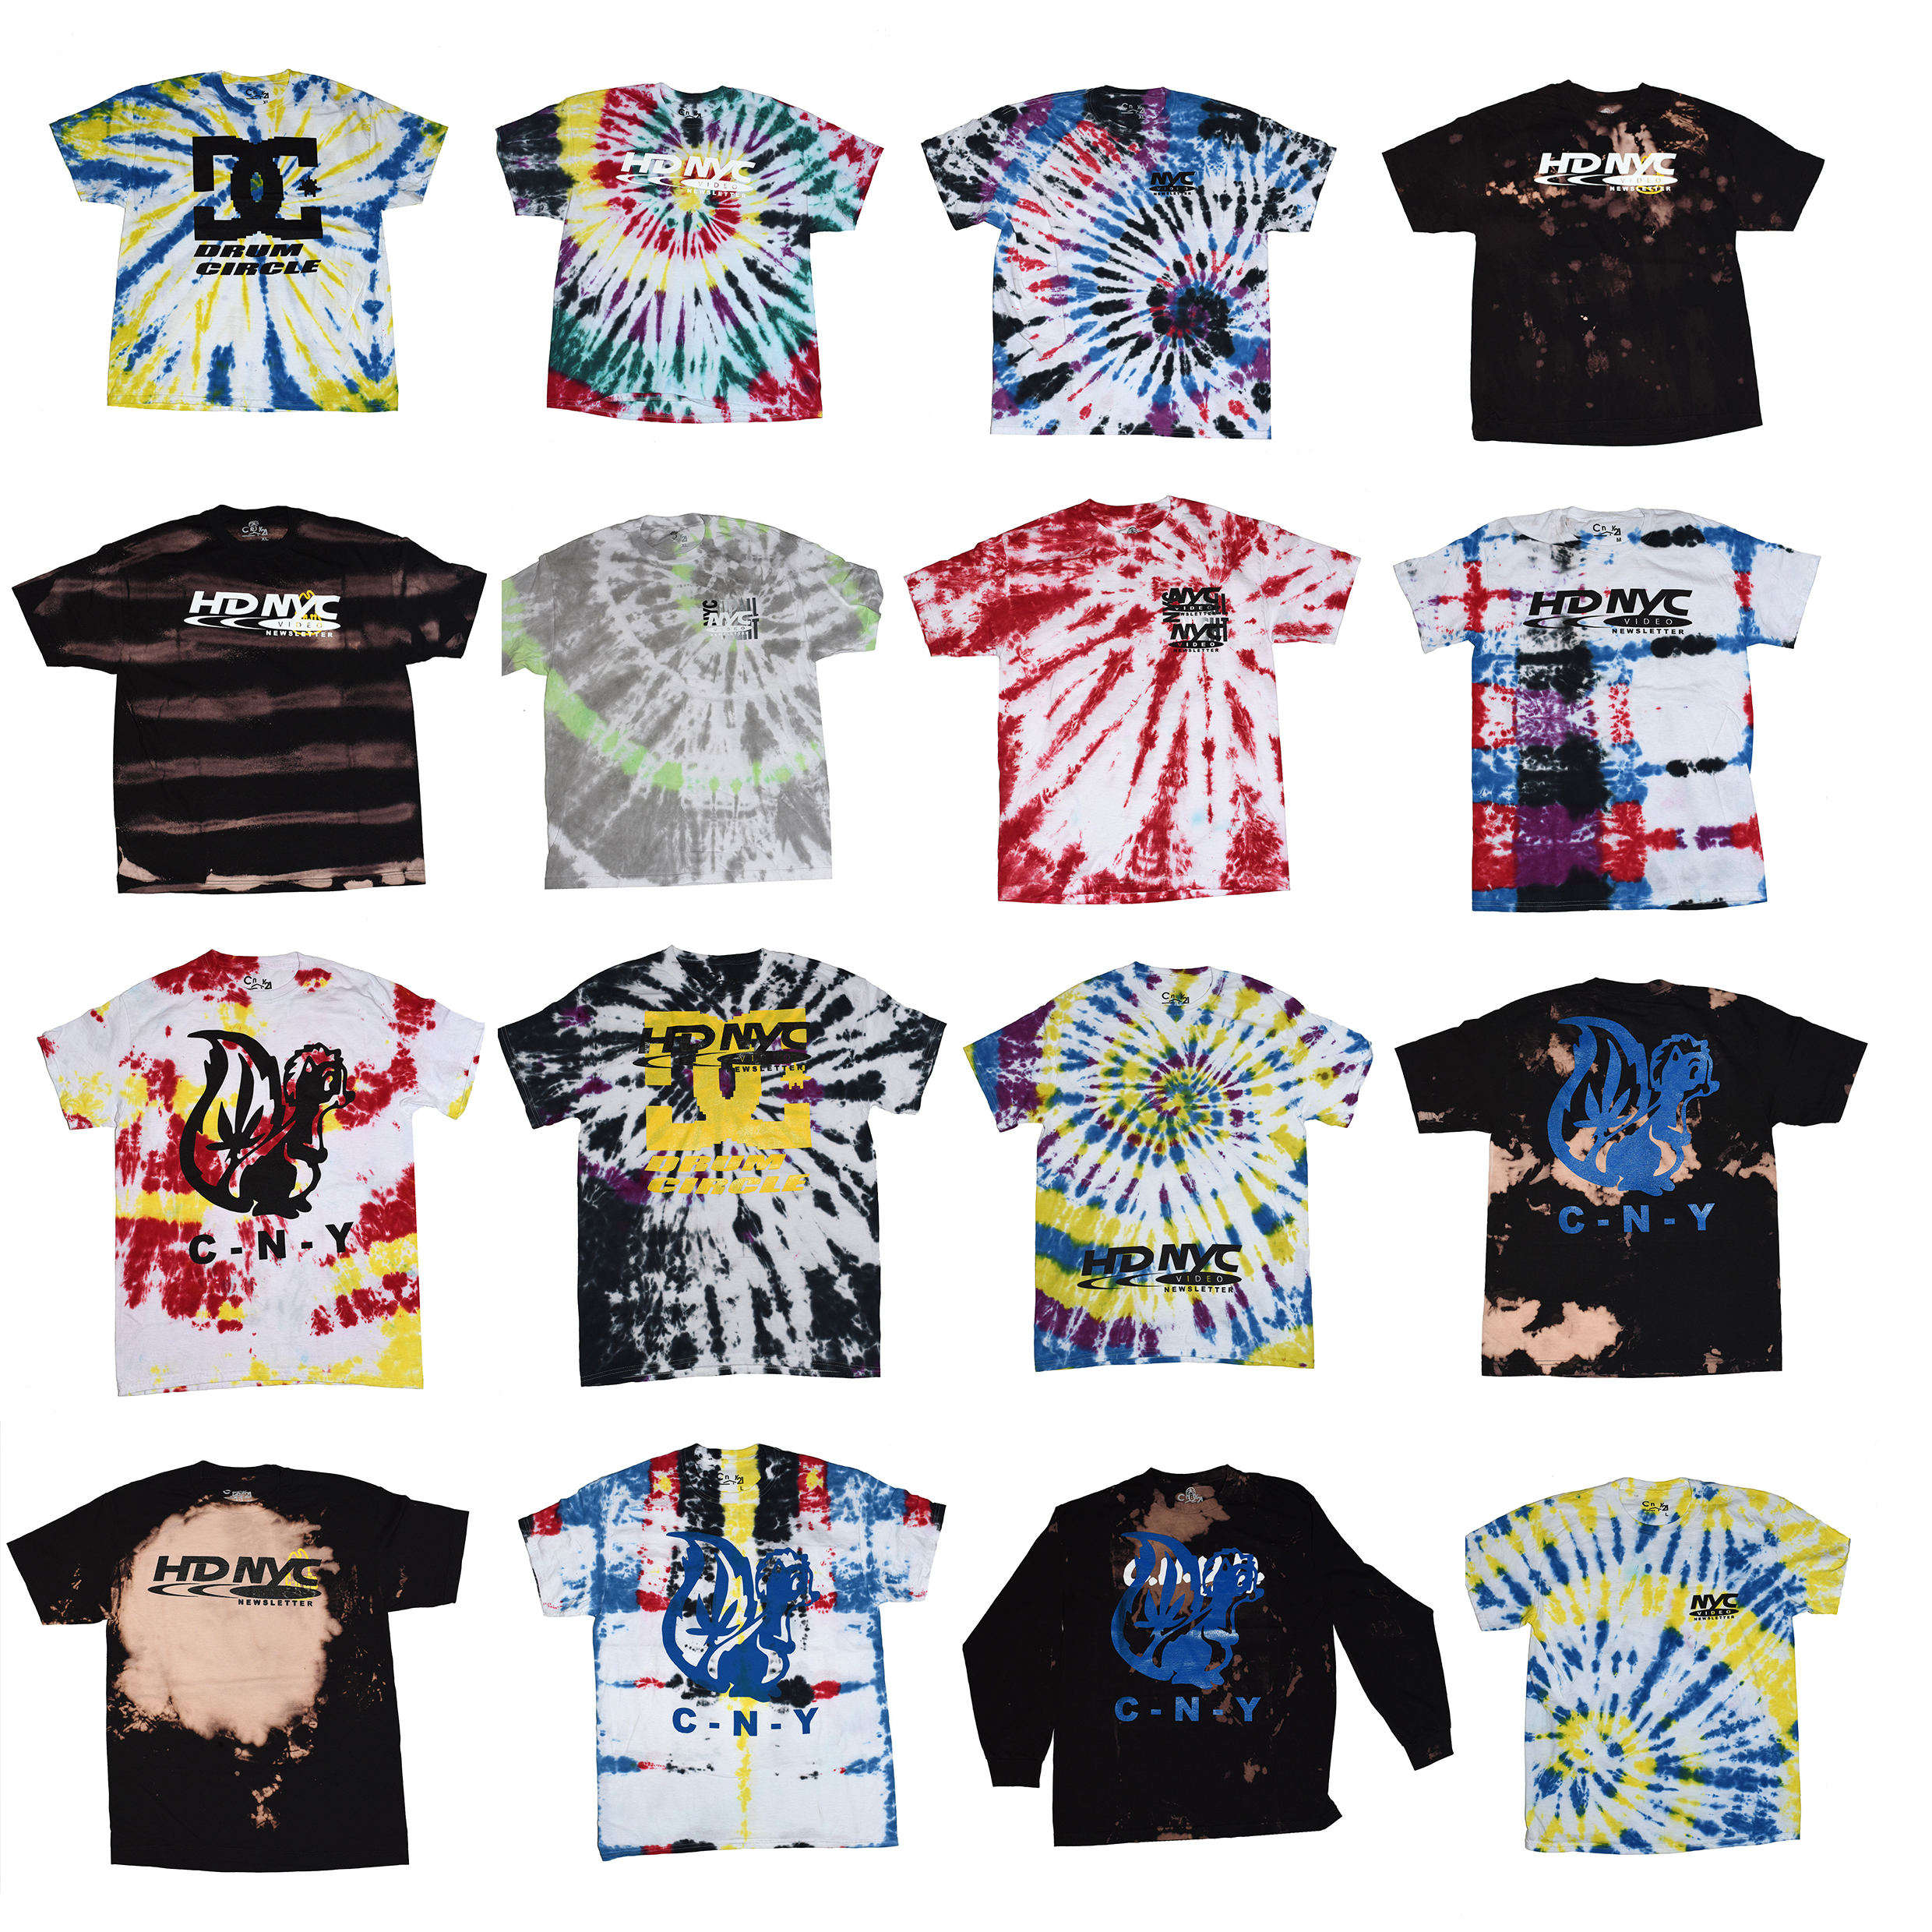 ++++++ SUMMER ---- E N D E R ----- shirts ------ AVAILABLE ----- only ------ online  ++++++++ <<< EACH PIECE UNIQUE>>>